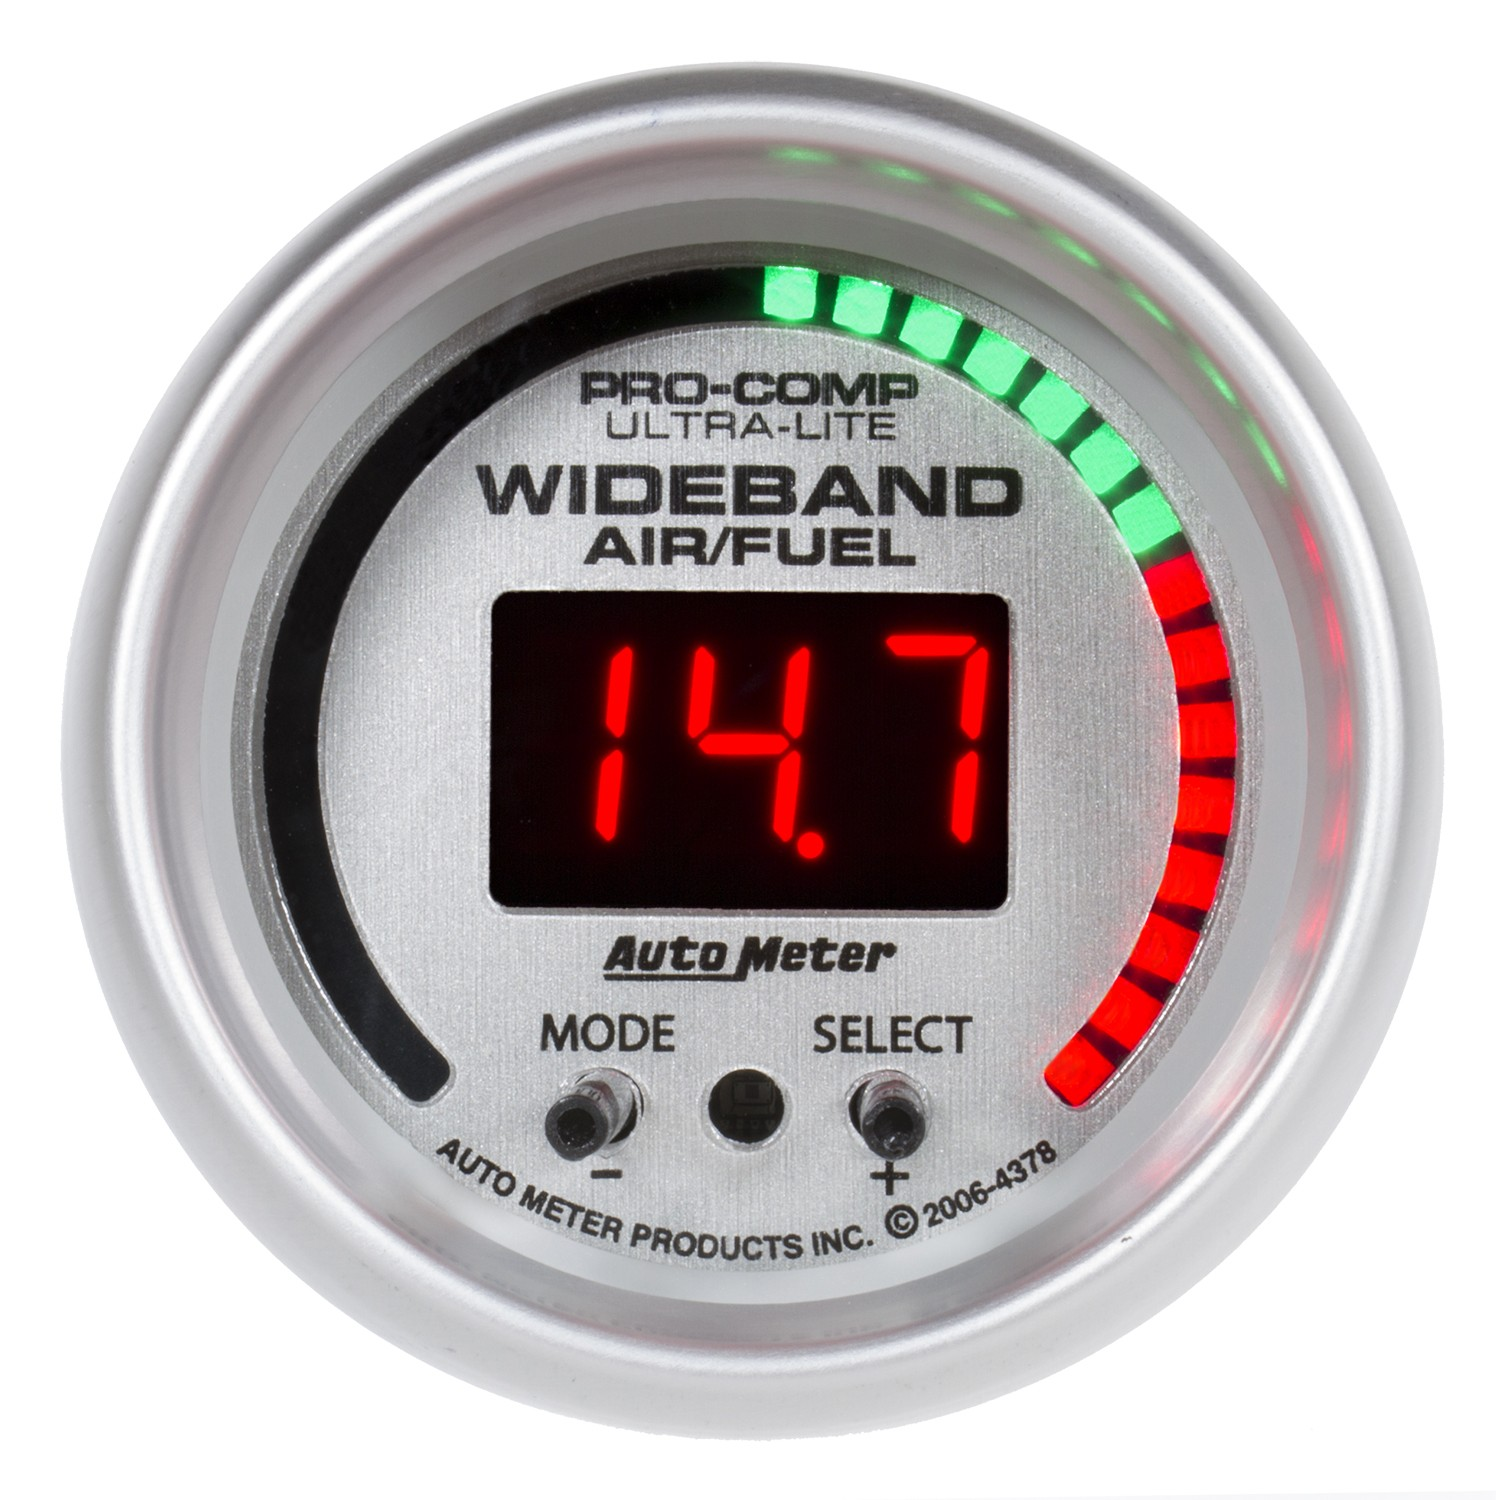 Autometer Wideband Wiring Diagram Detailed Schematic Diagrams Also Air Fuel Ratio Gauge On Auto Meter Releases New Pro Plus Gauges Powerboat Nation Ethernet